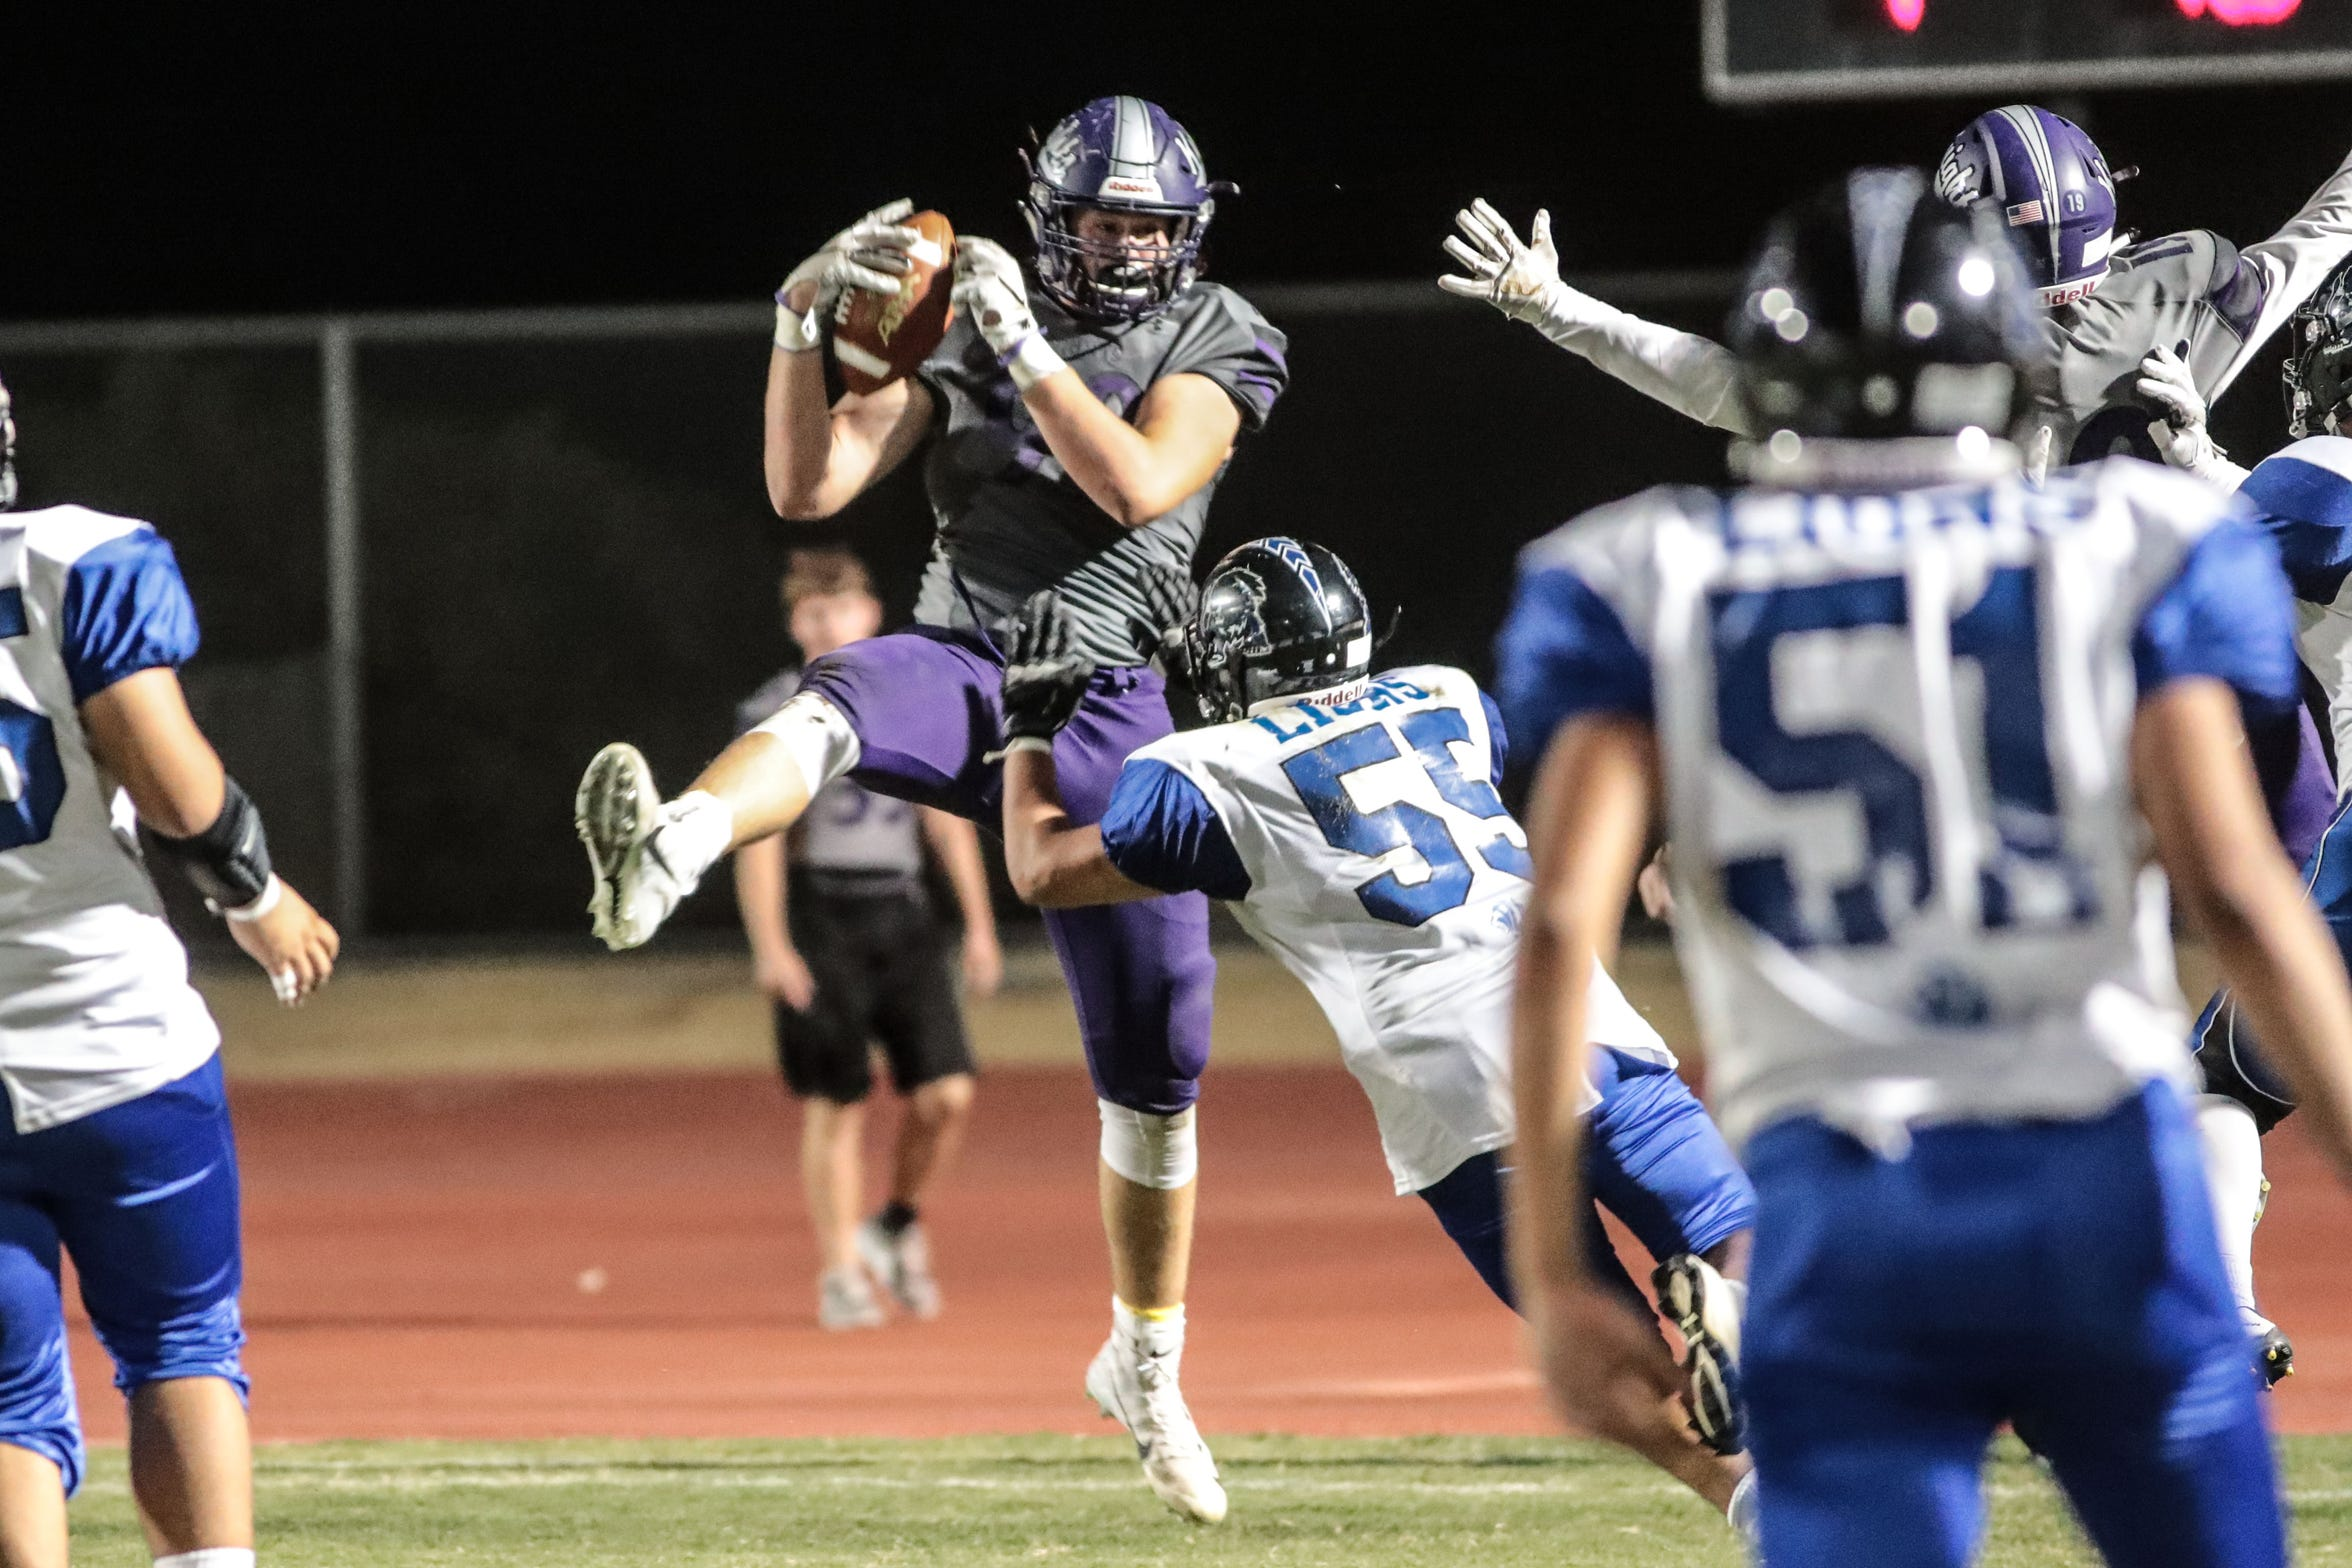 Shadow Hills' Jake Shipley started at tight end and defensive end for the Knights.